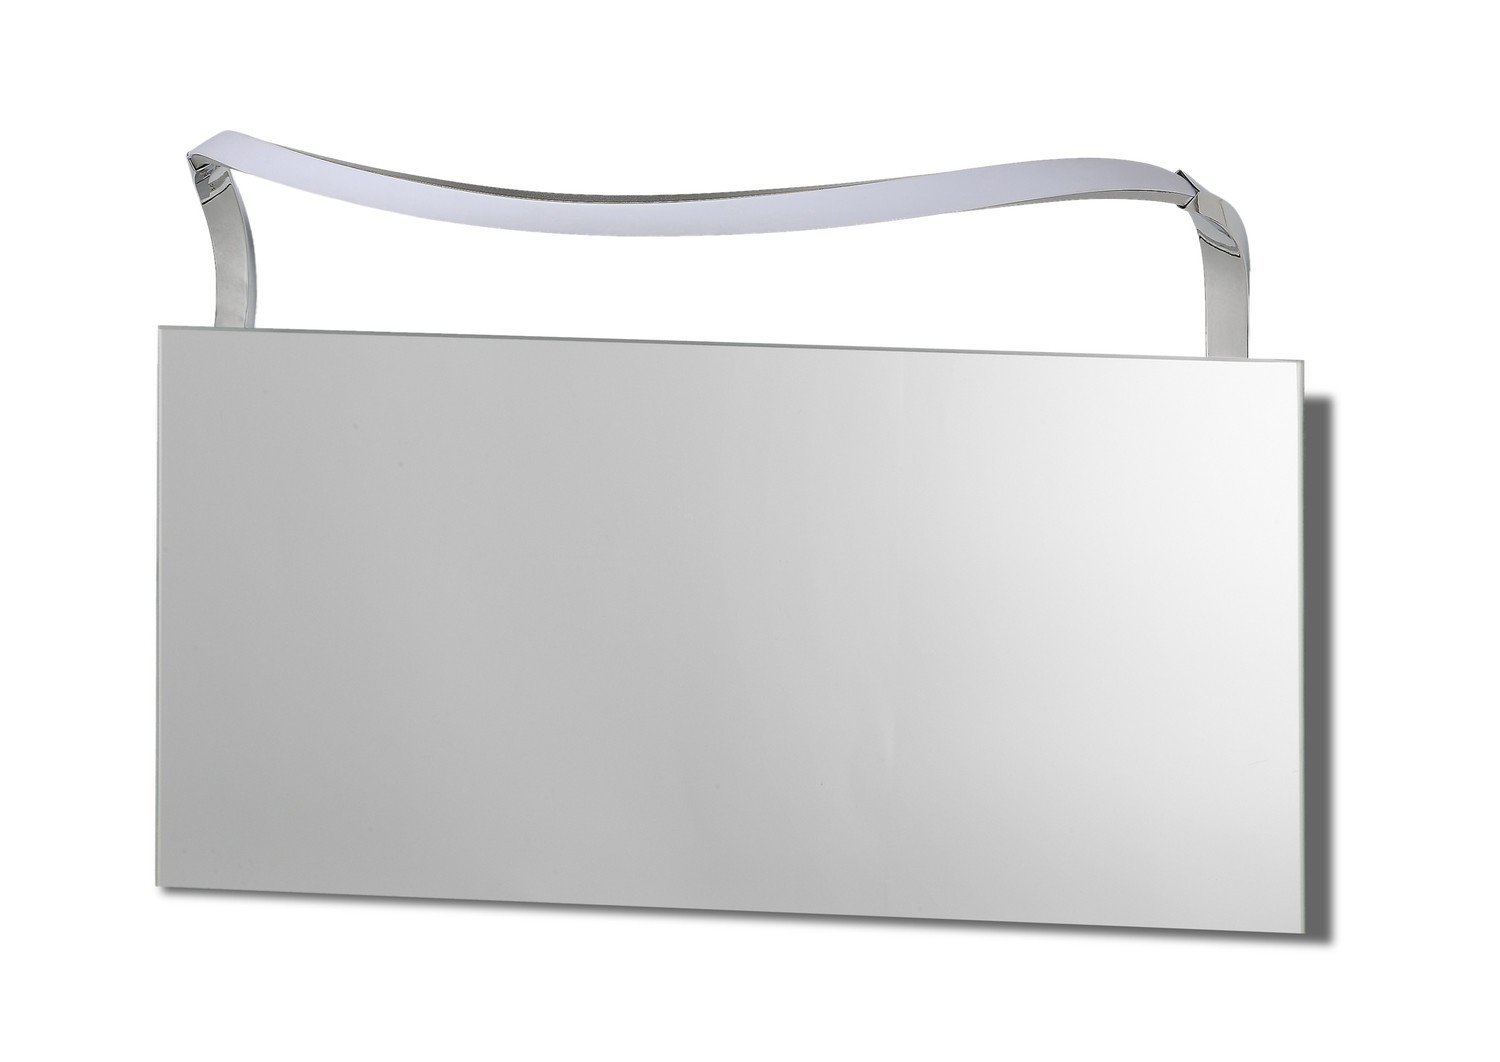 Sisley Wall Lamp 12W LED Big Wave IP44 4000K, 950lm, Silver/Frosted Acrylic/Polished Chrome, 3yrs Warranty